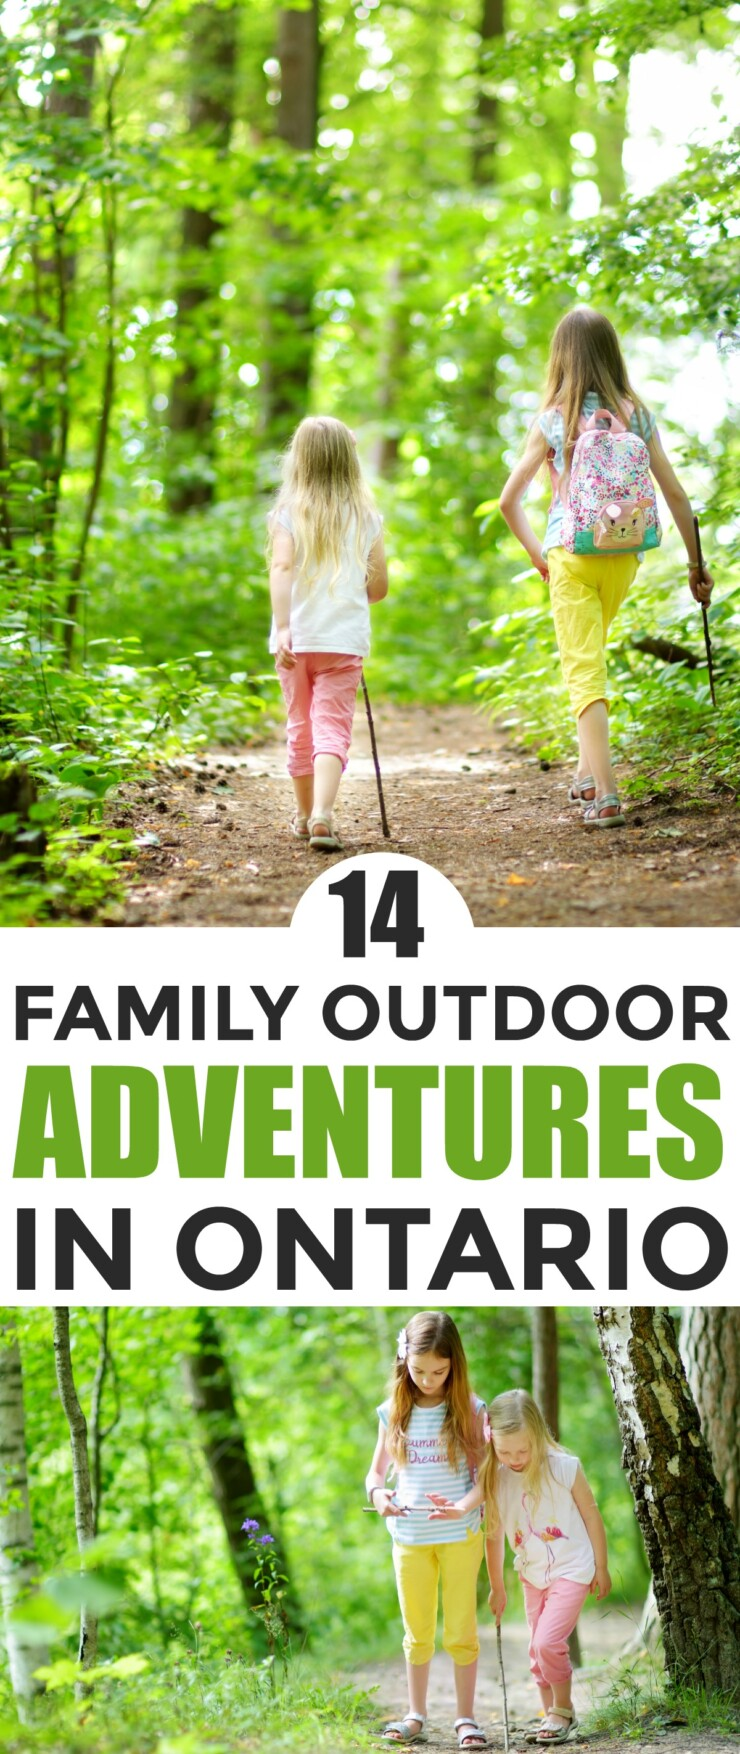 If your family loves participating in exciting, new outdoorsy activities, Ontario is the perfect place for you to discover. Finding family outdoor adventures in Ontario is not a difficult task, especially with so many to choose from spread across this large province.